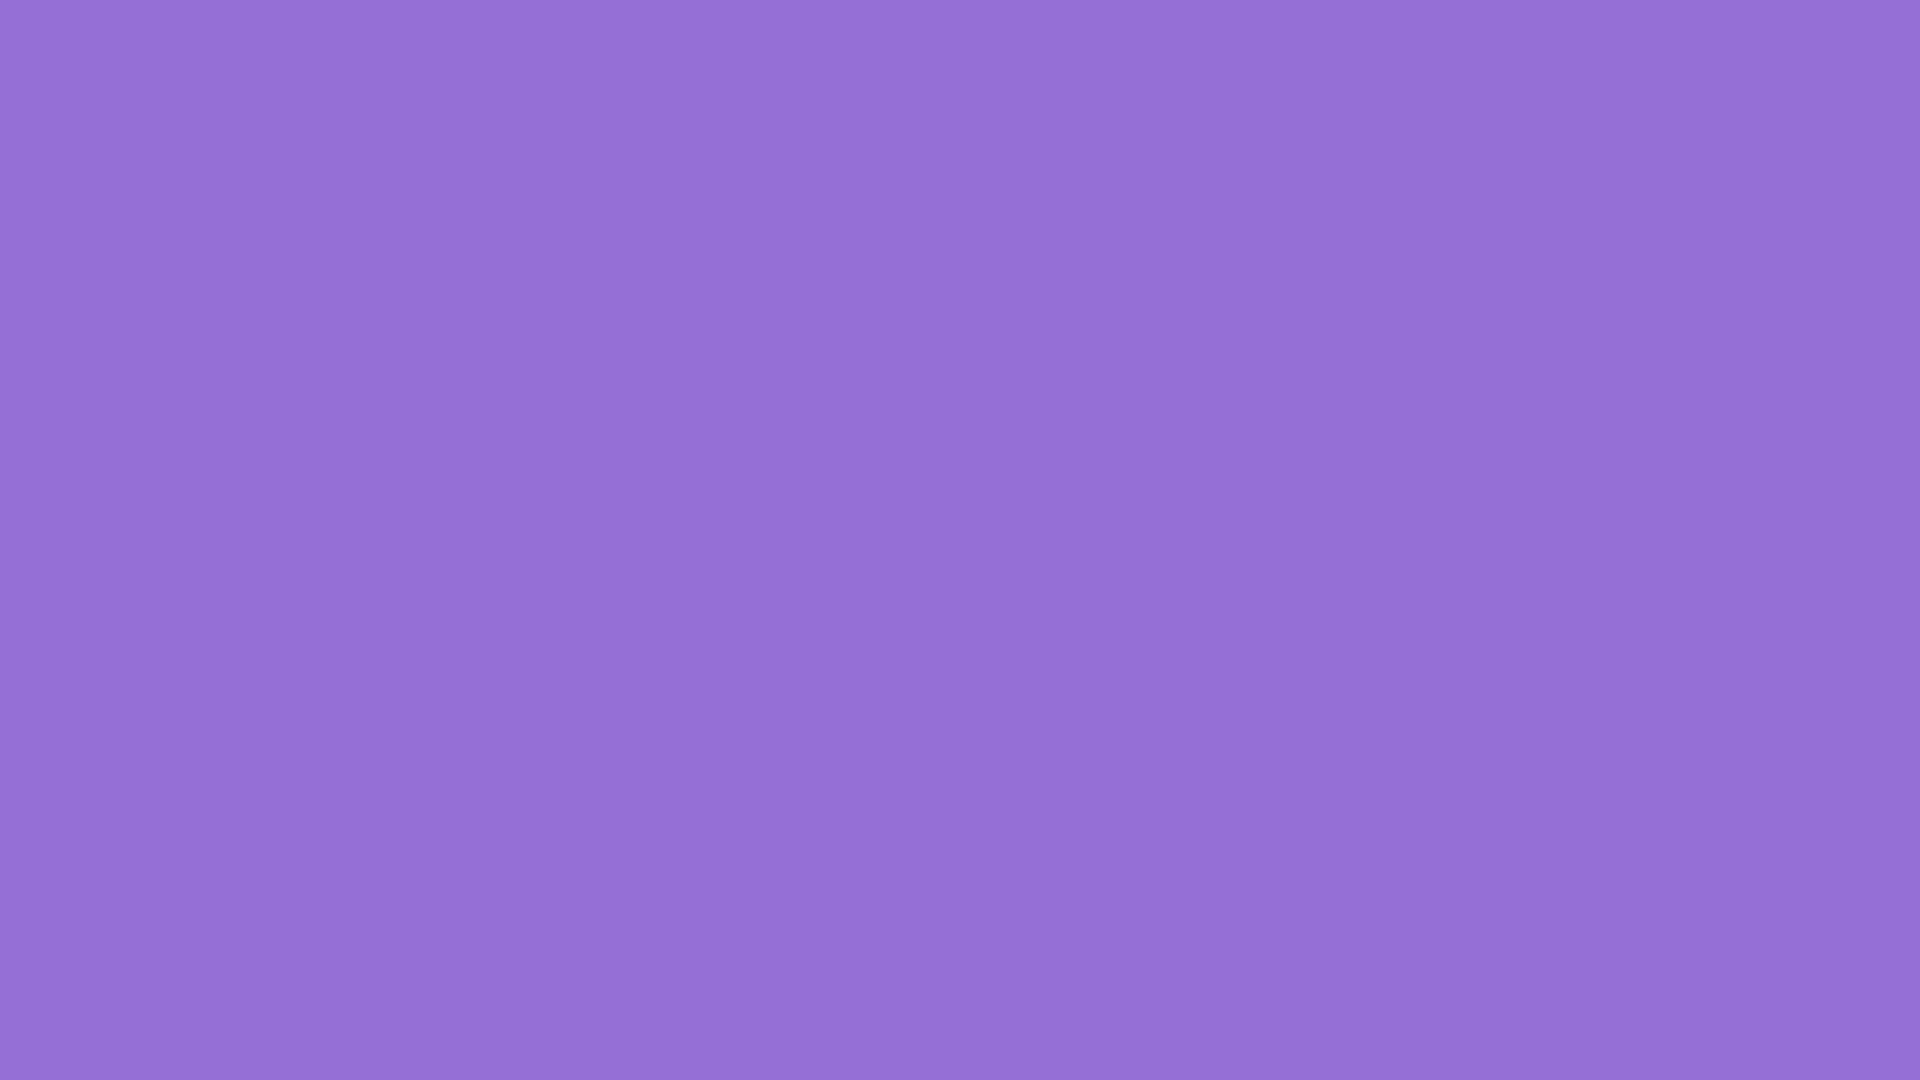 Solid Dark Purple Background Background 1 HD Wallpapers | Hdimges.